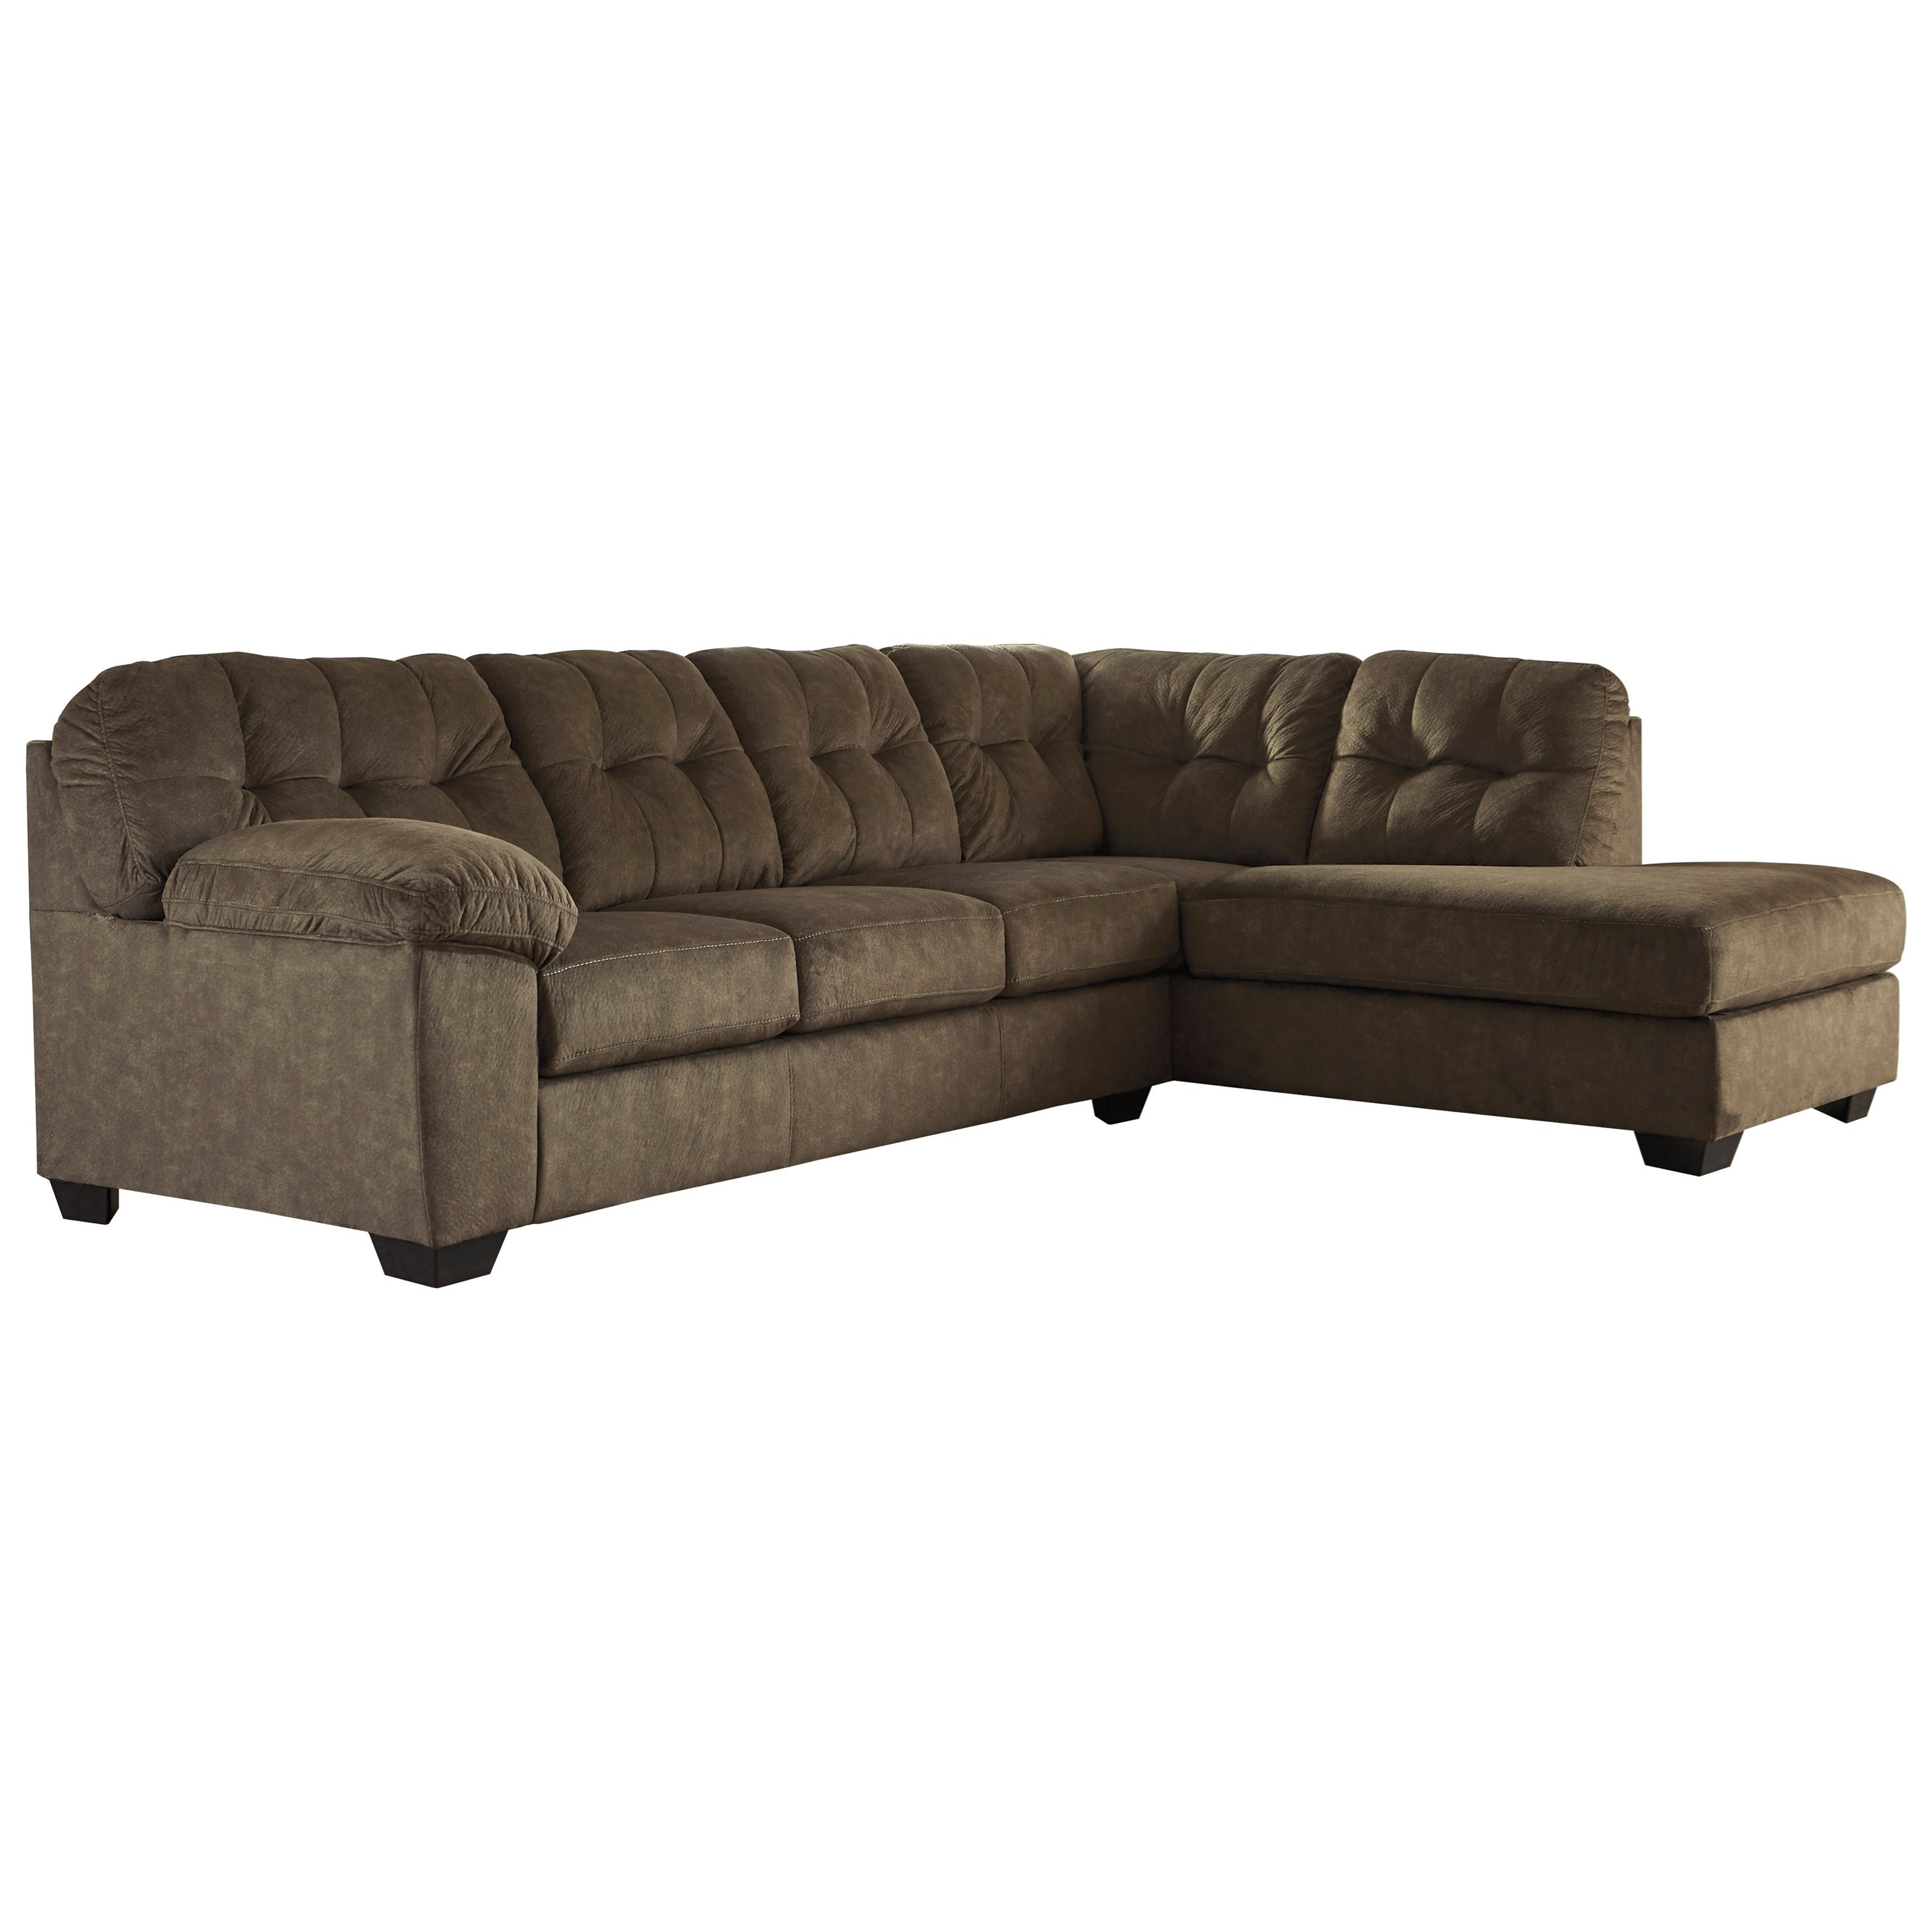 Accrington Sectional with Right Chaise & Queen Sleeper by Ashley (Signature Design) at Johnny Janosik